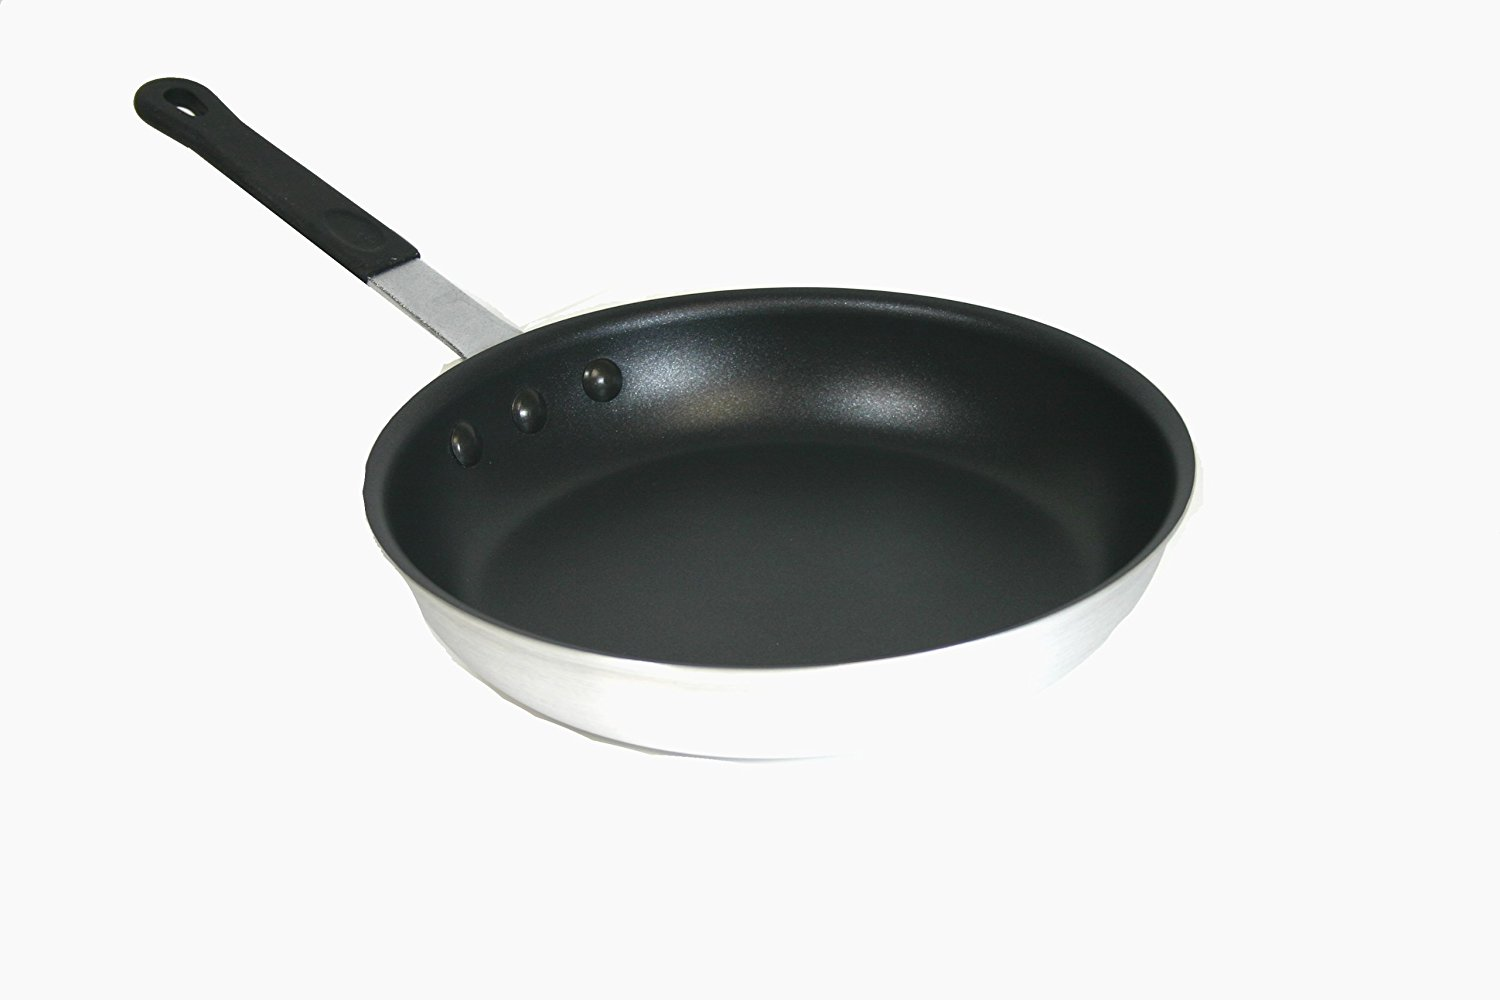 12-Inch Non-stick Natural Aluminum Frying Pan, non stick surface By Paderno World Cuisine by